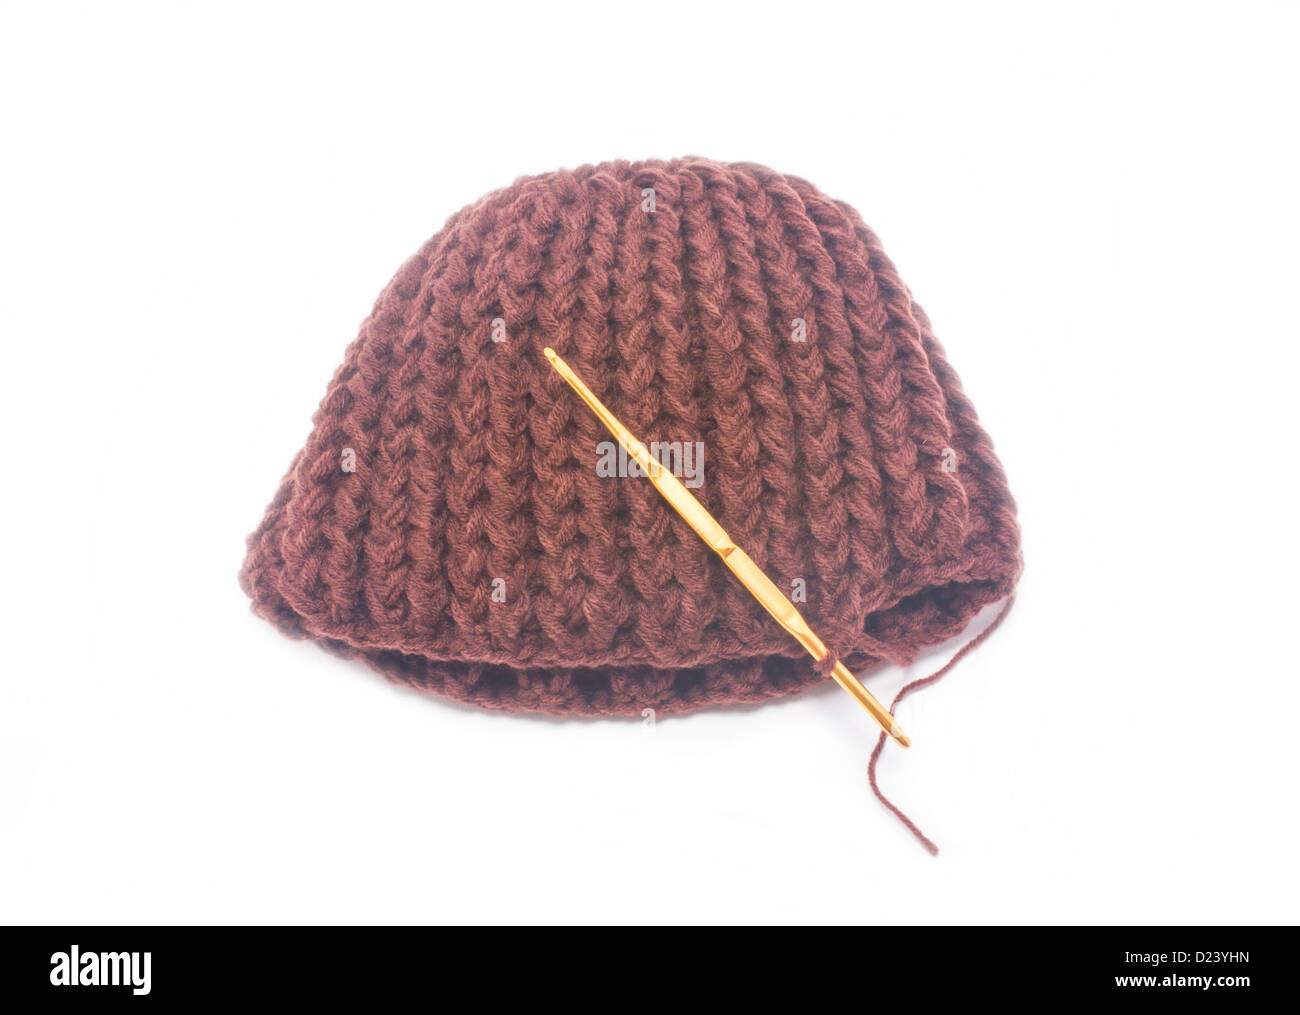 f61f8882 Brown crochet hat with golden hook isolated on white background ...